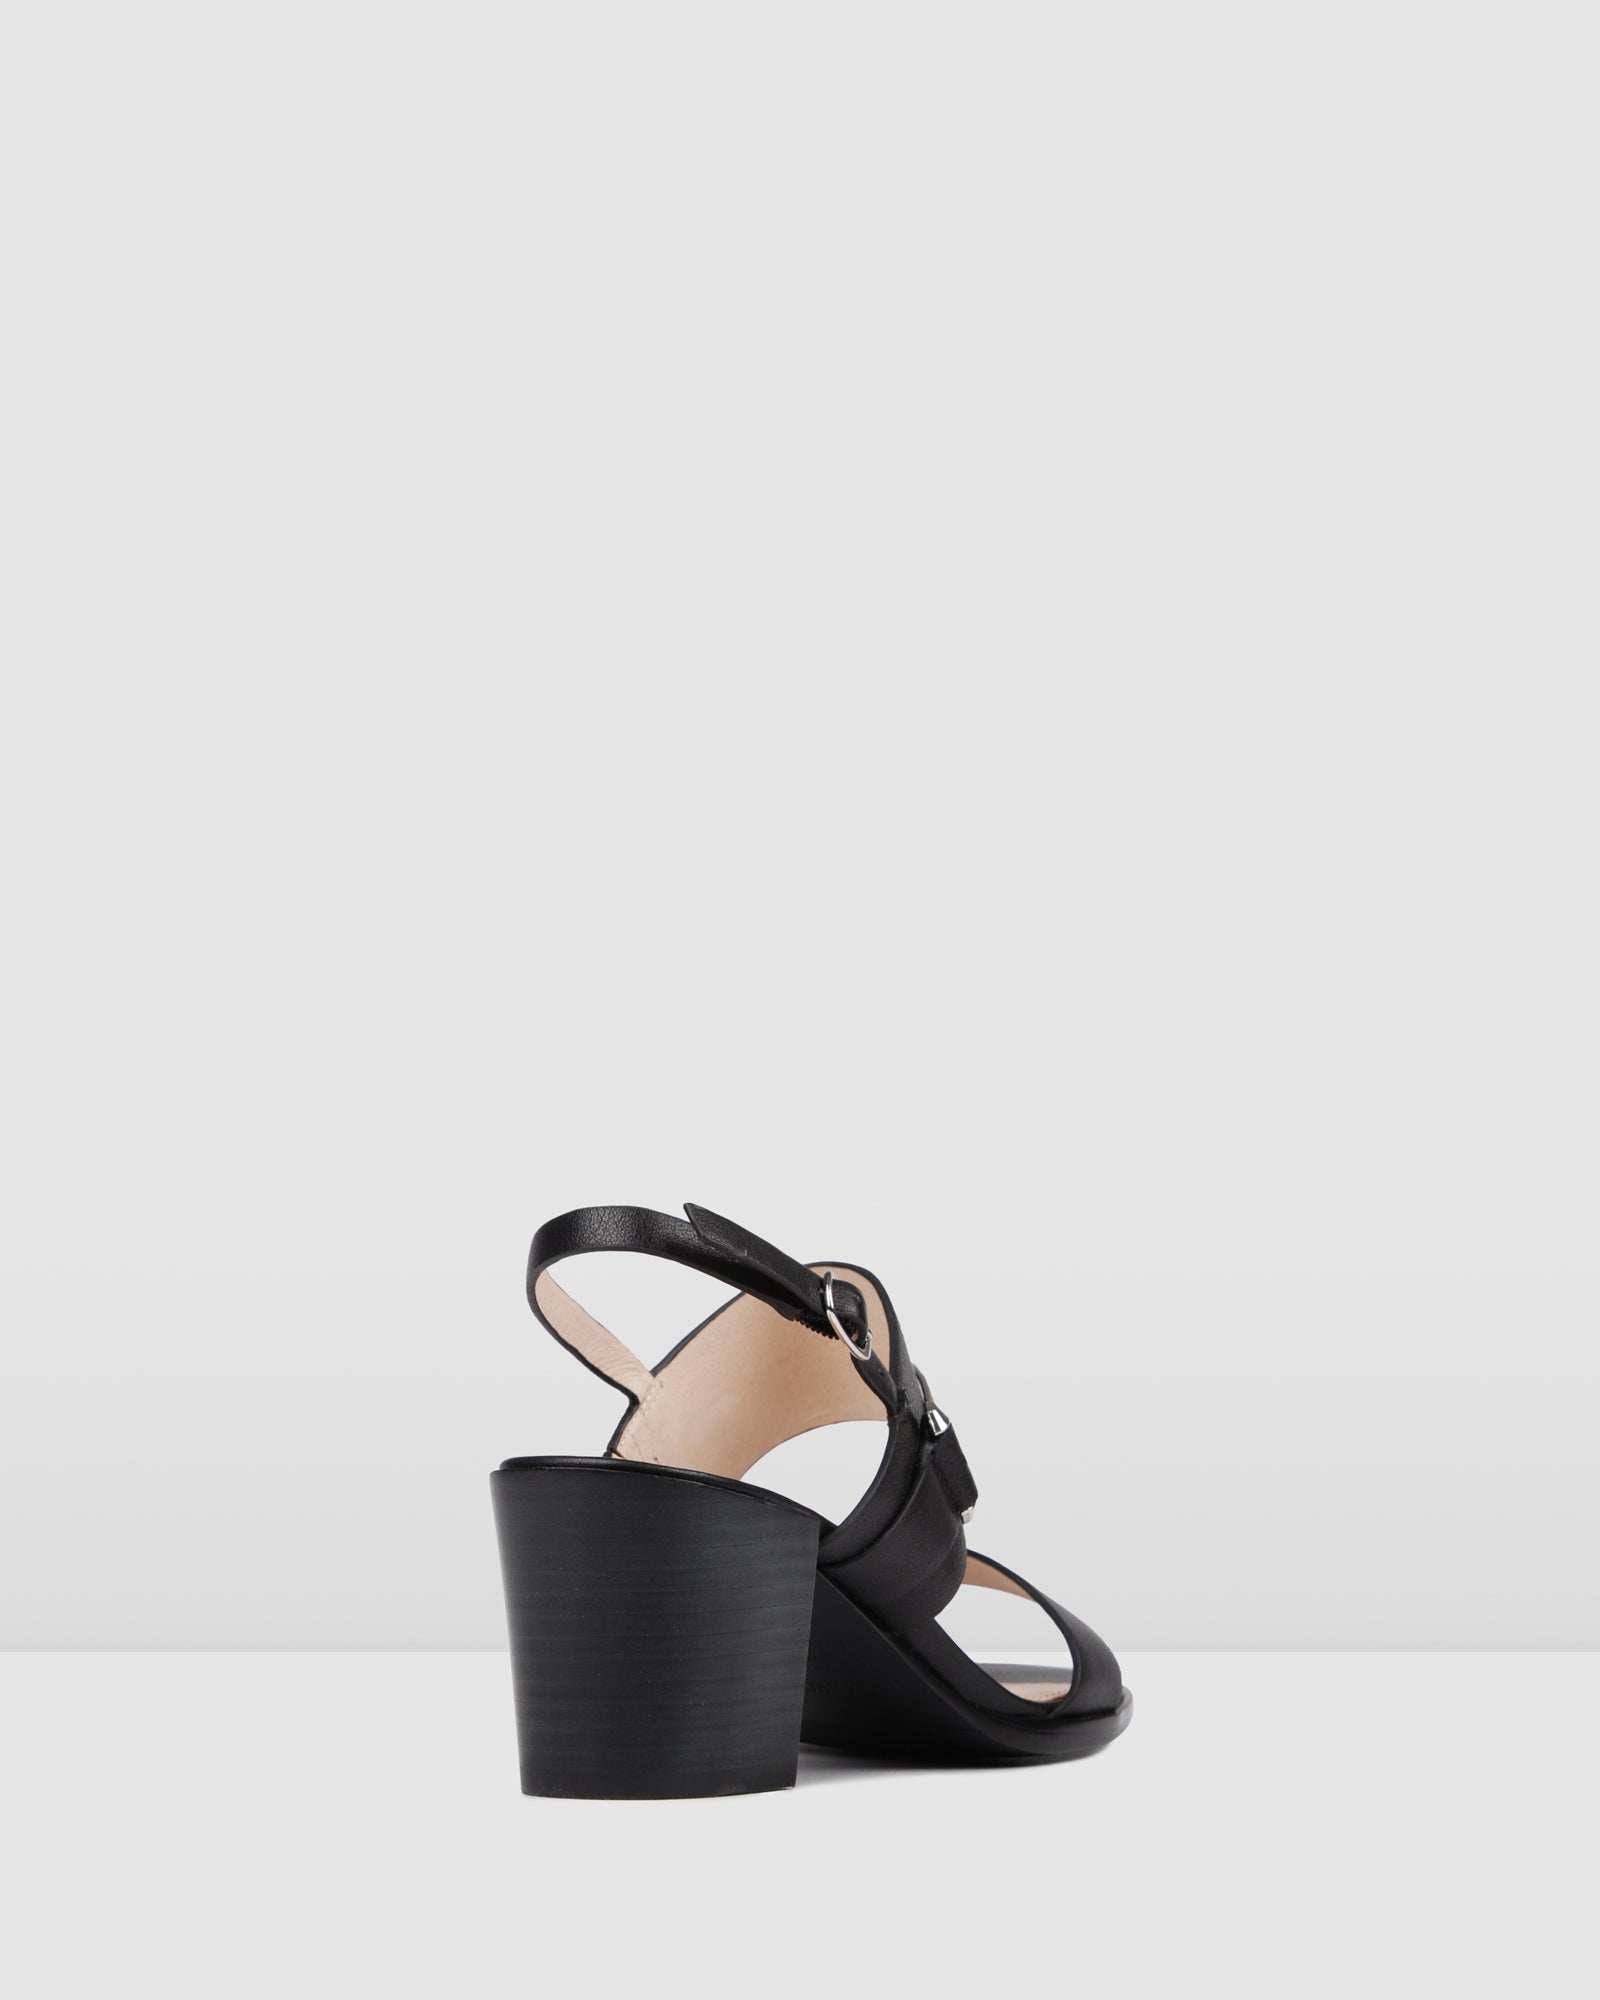 BRYLEE MID HEEL SANDALS BLACK LEATHER